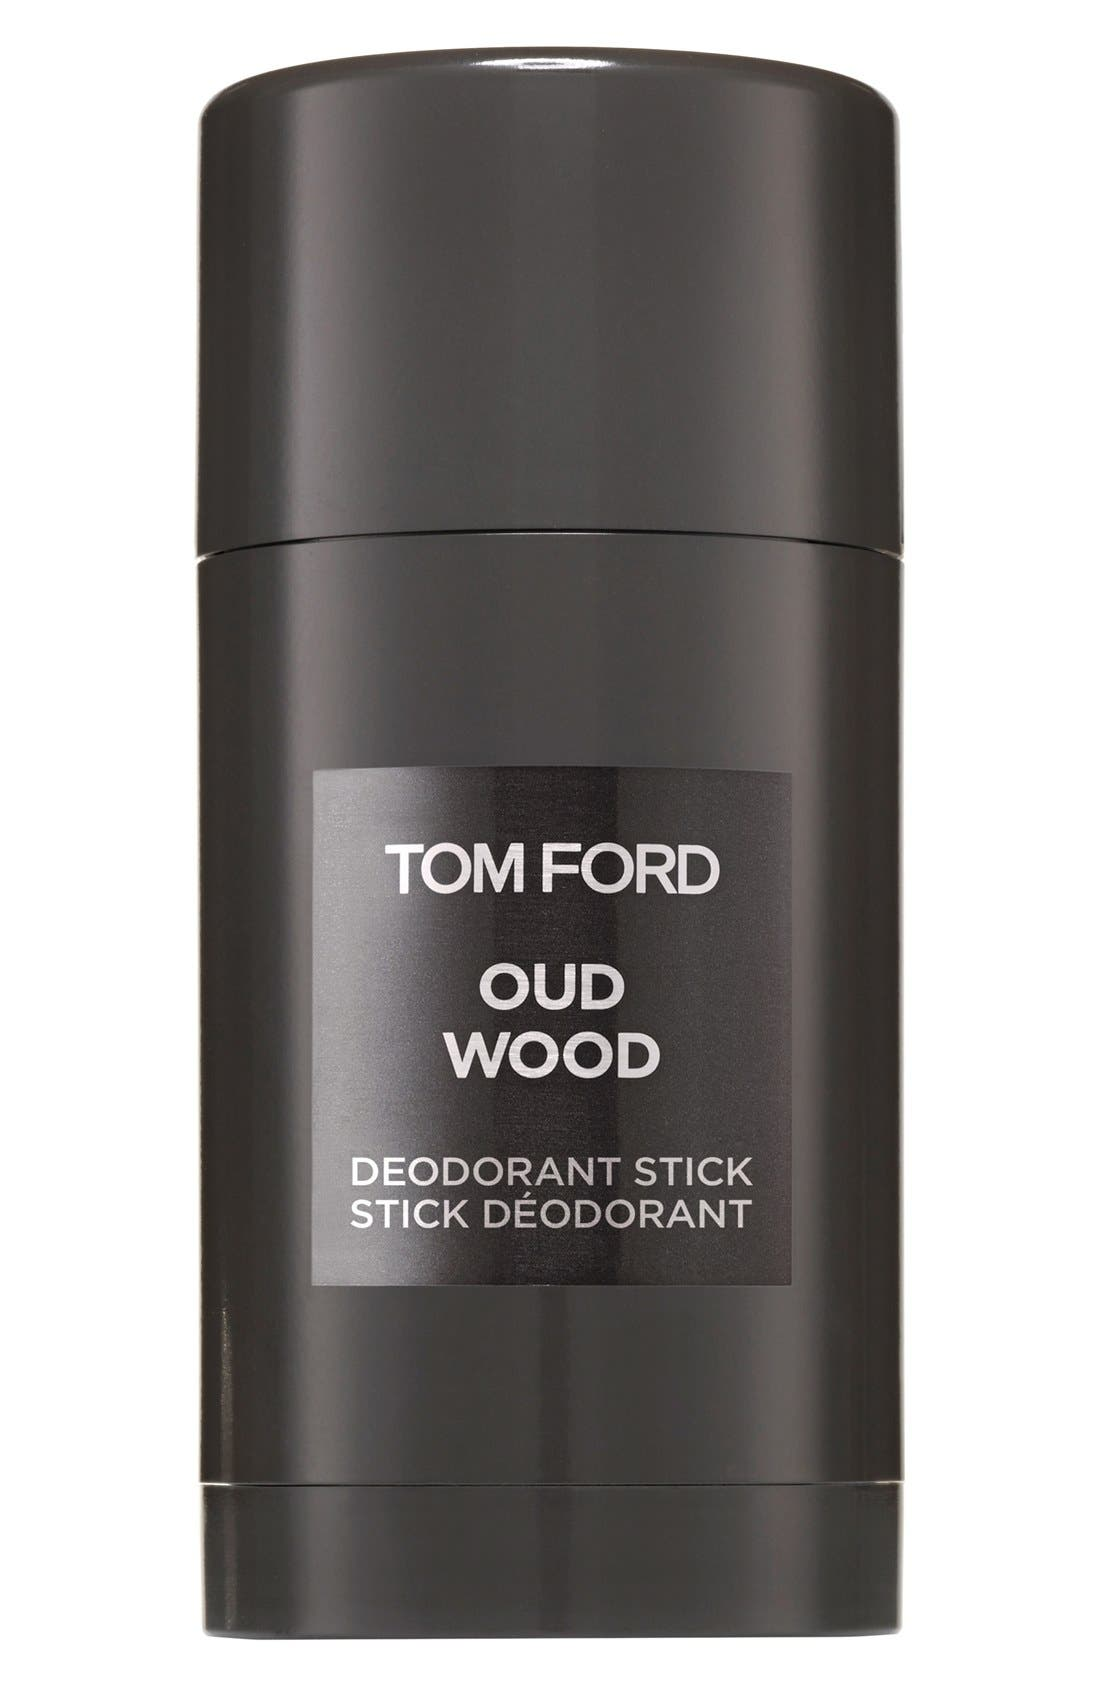 Tom Ford 'Oud Wood' Deodorant Stick